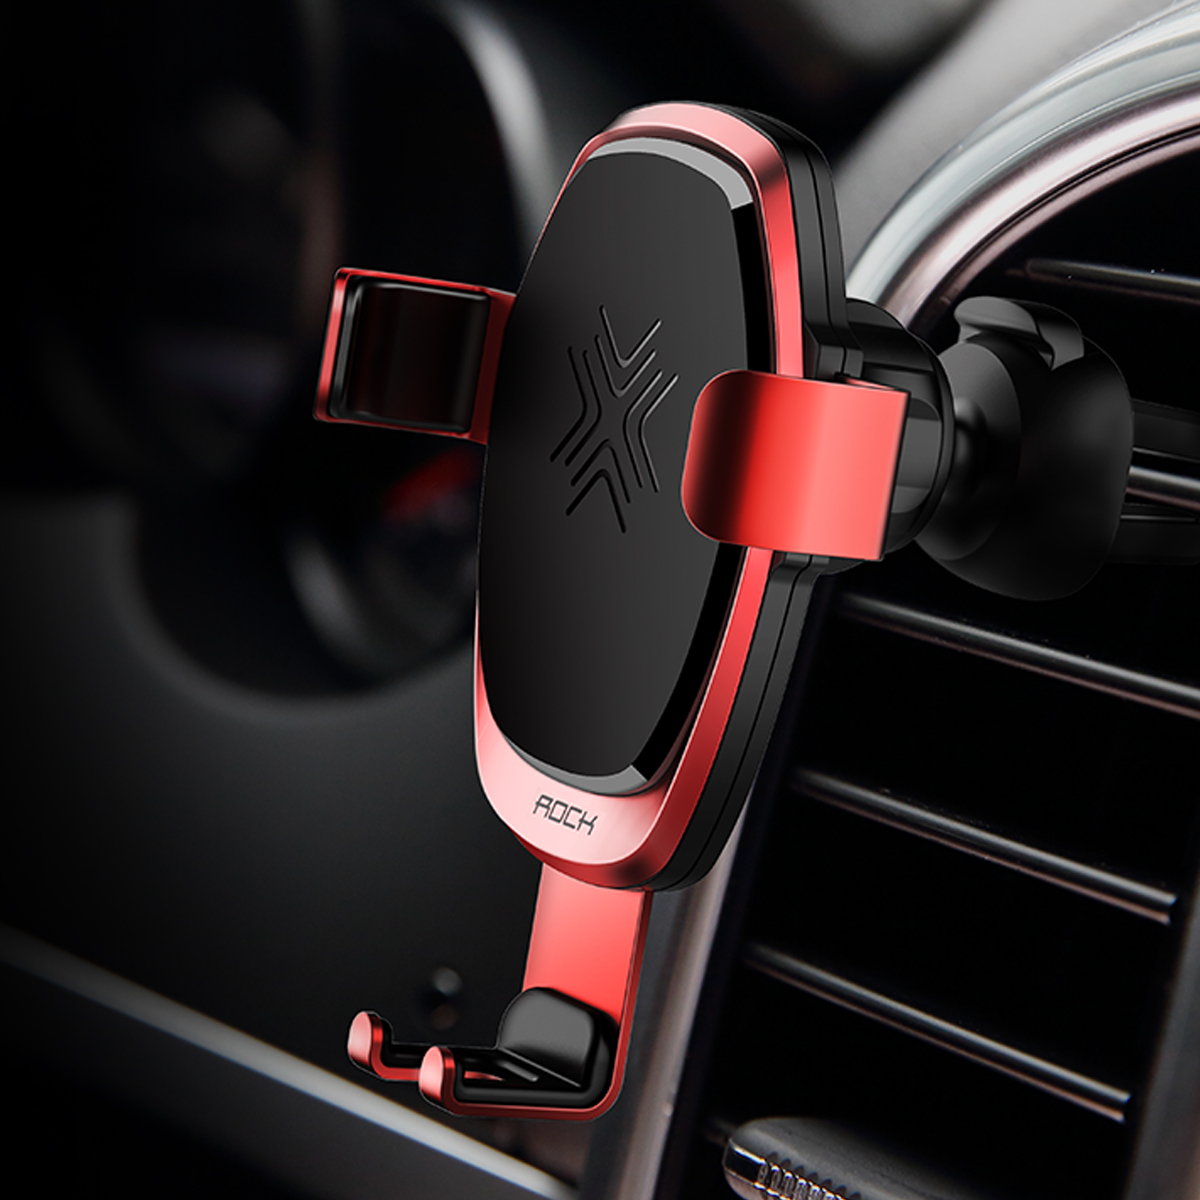 HTB10XBPKr1YBuNjSszhq6AUsFXa2 - 10W QI Wireless Car Charger Gravity Holder , ROCK for iPhone X 8 Plus Samsung Galaxy S8 S7 Note 8 Quick Charge Charging Stand